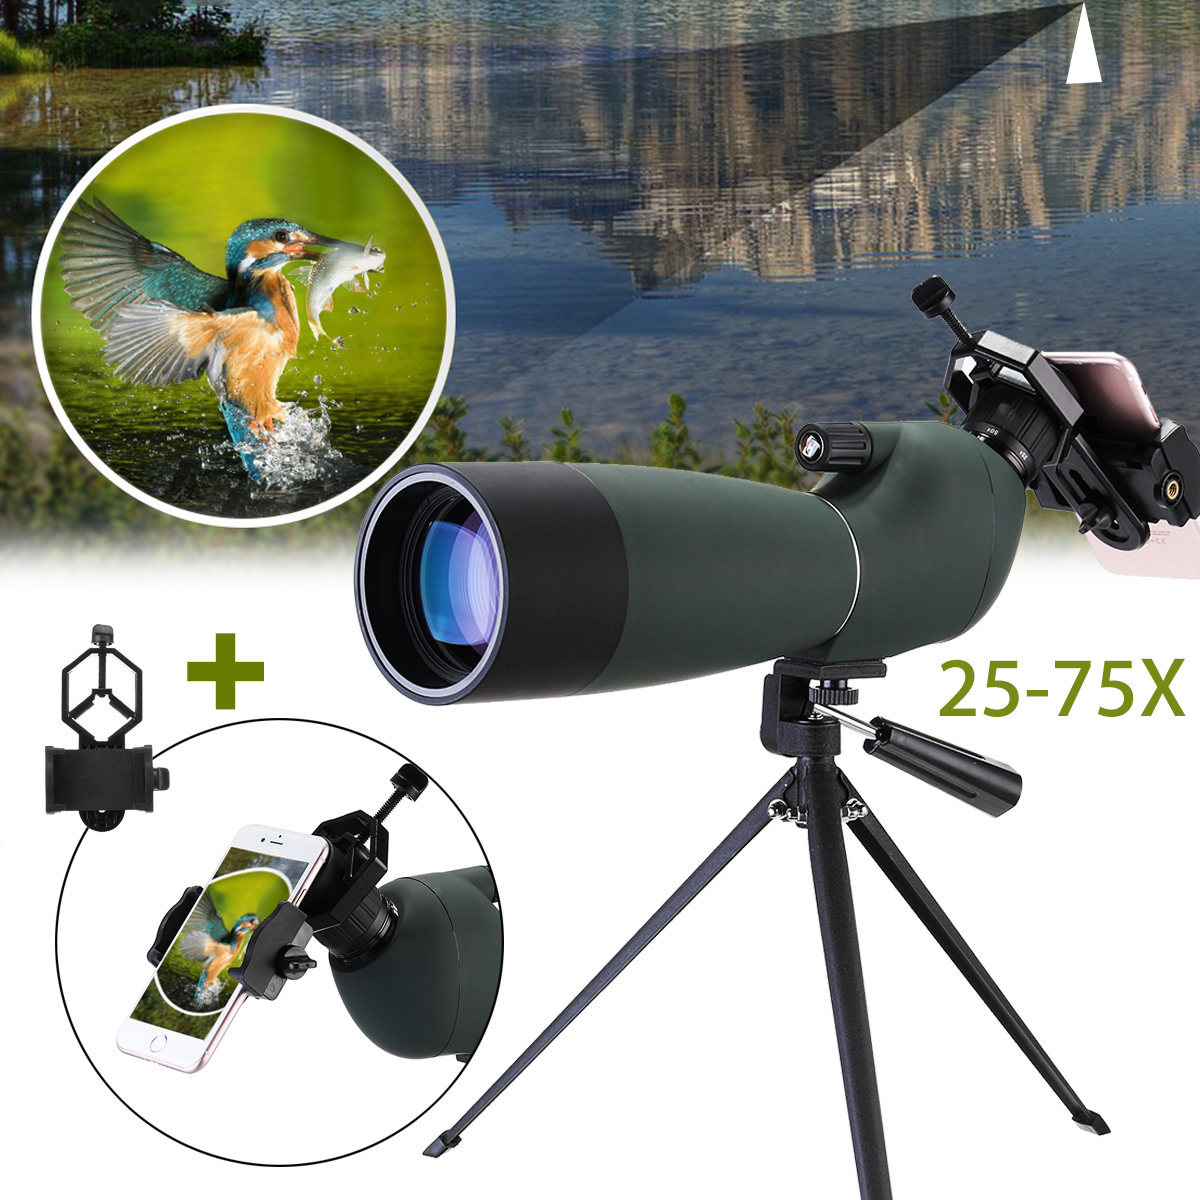 купить Spotting Scope BAK4 25-75x70 Zoom Monocular Telescope Waterproof Binoculars with Tripod Phone Holder for Birdwatch Hunting по цене 4646.27 рублей